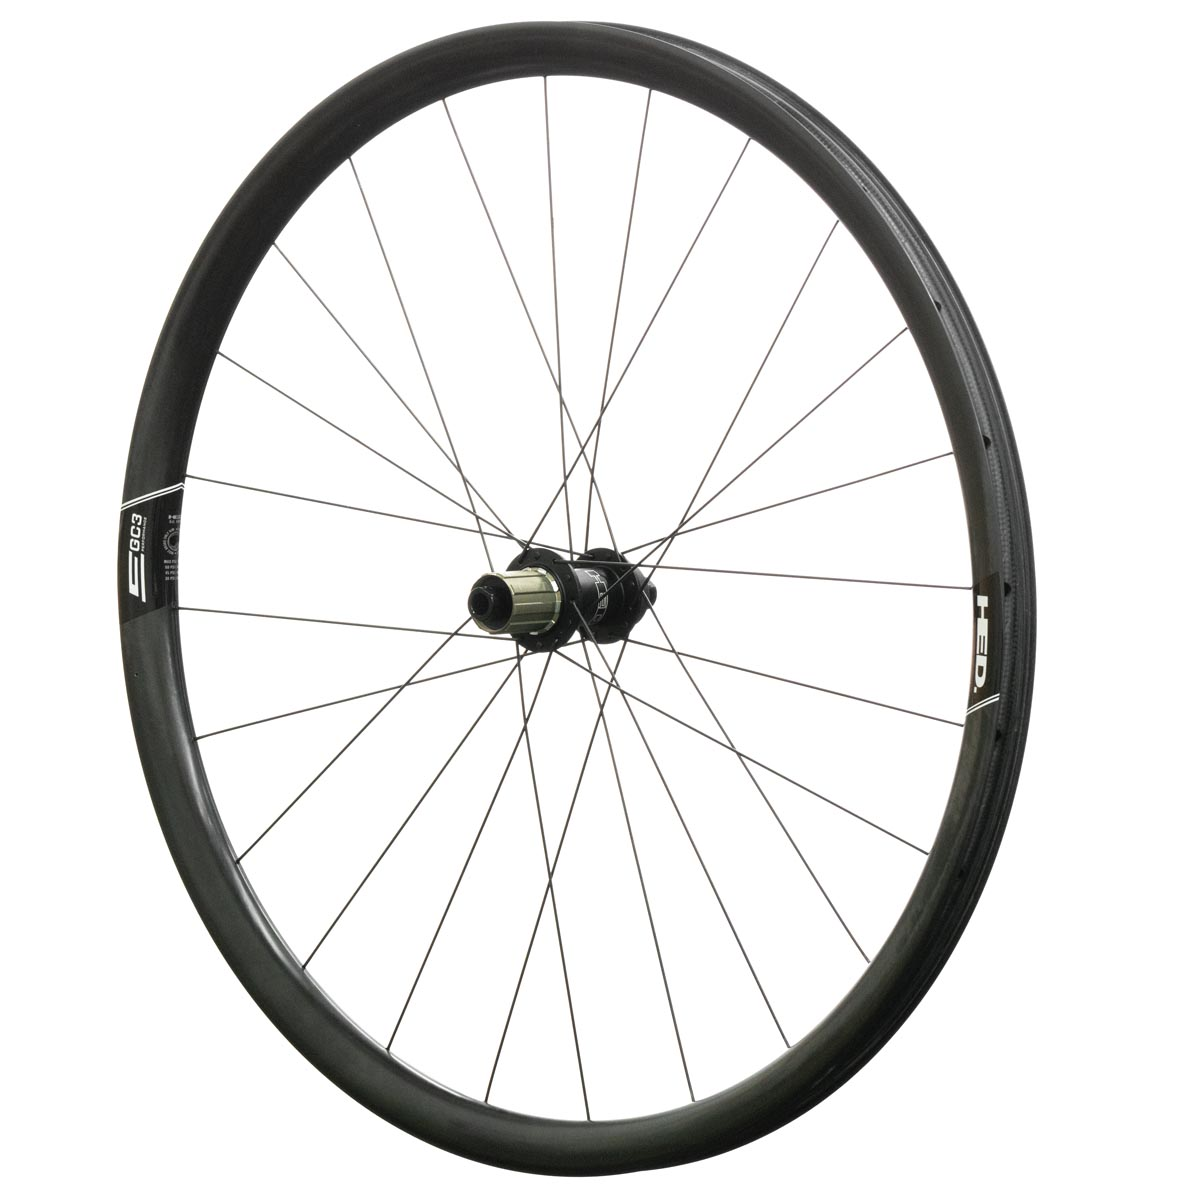 HED Emporia GC3 Performance wheelset rear